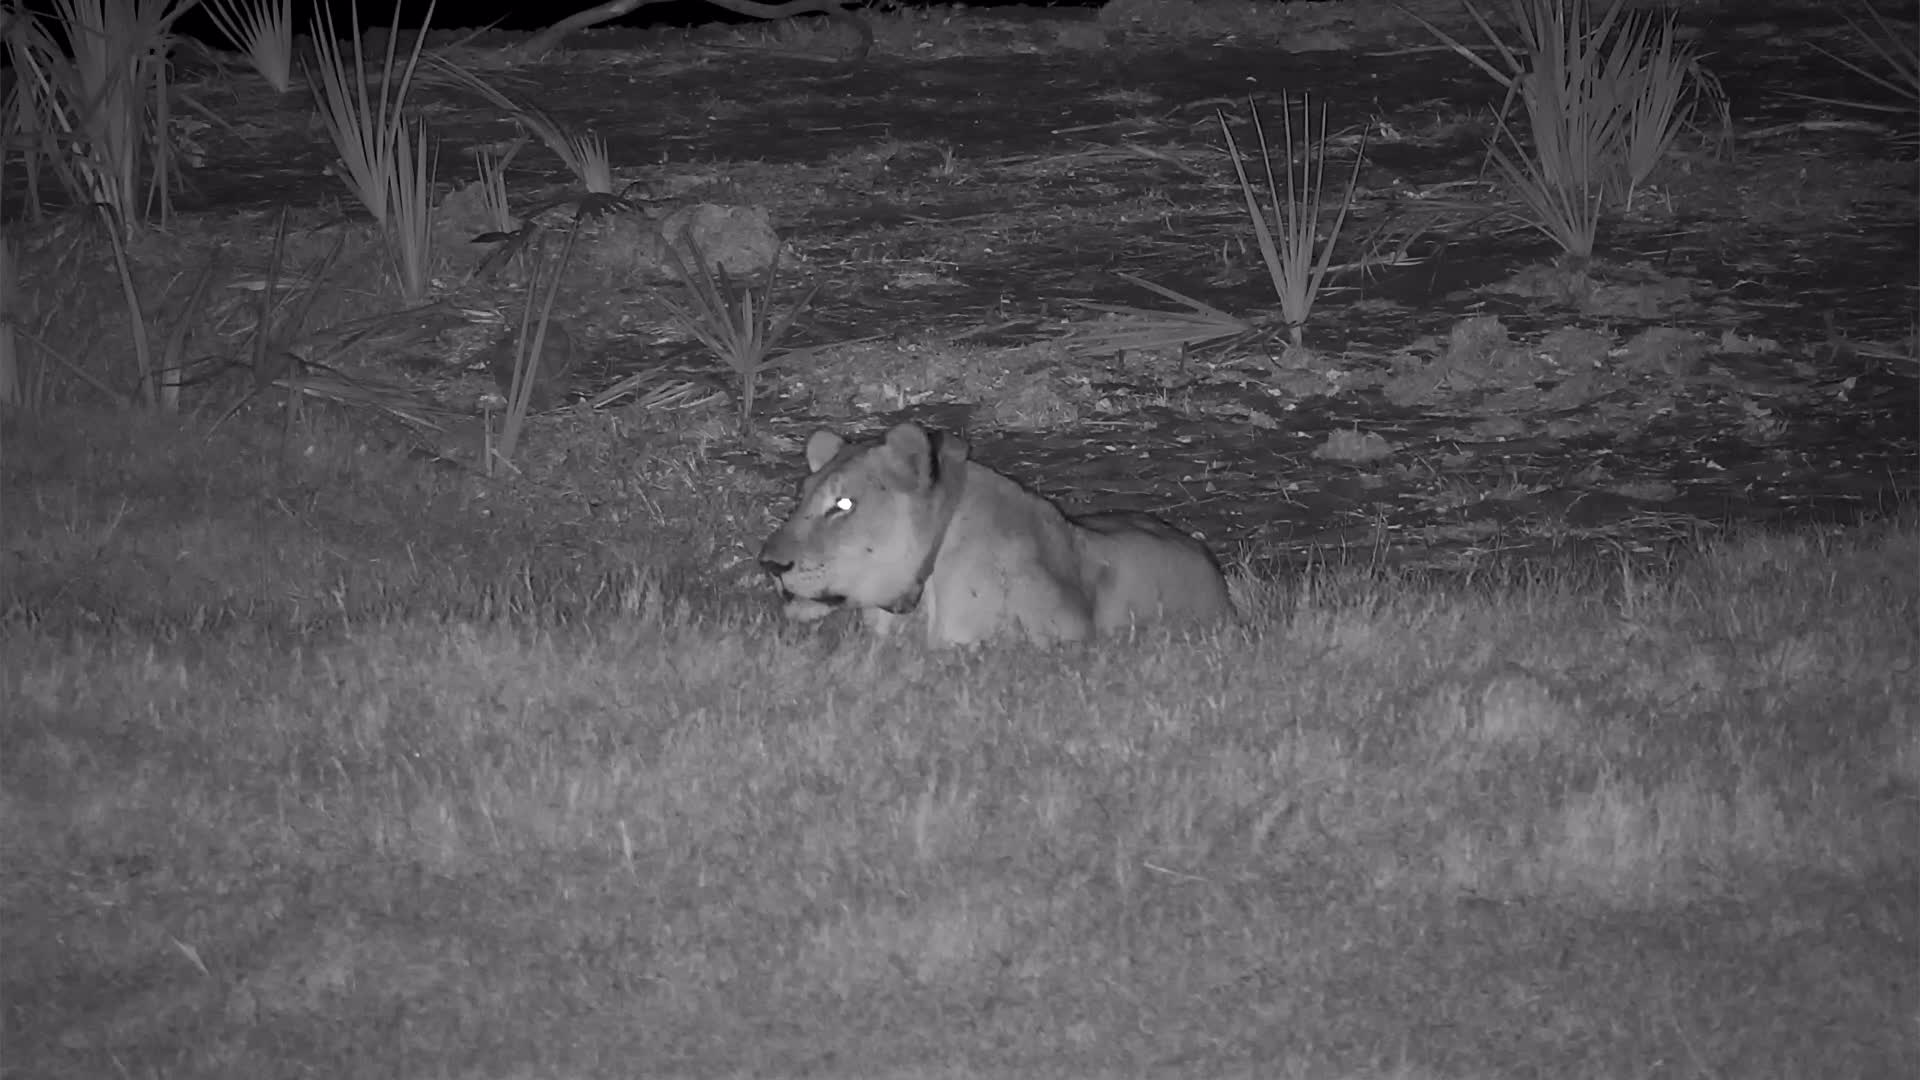 VIDEO: More roars and resting  by the lion